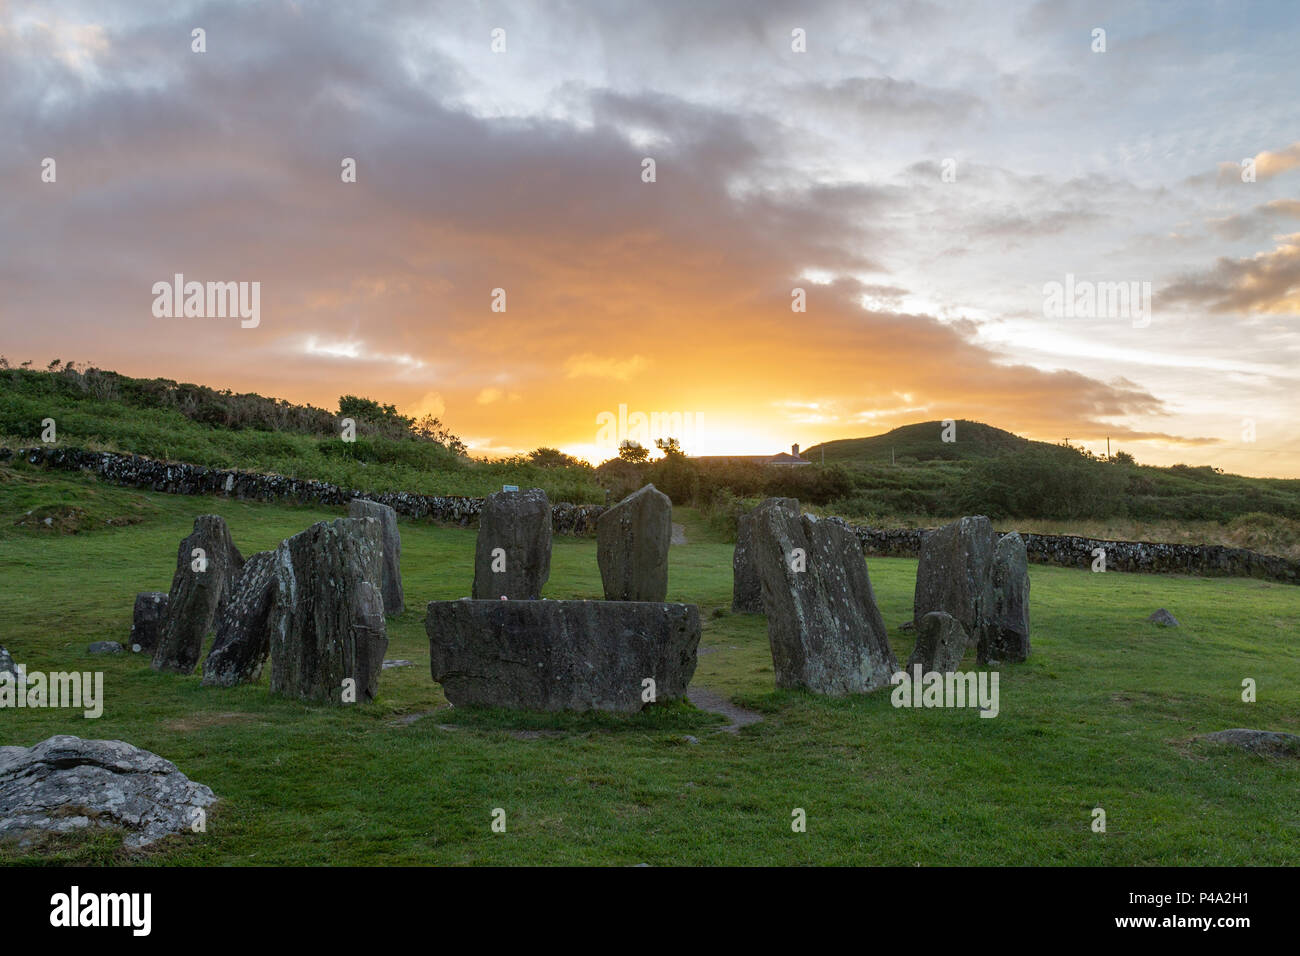 glandore-west-cork-ireland-21st-june-2018-the-sun-rose-over-the-drombeg-stone-circle-at-0519-this-morning-marking-the-start-of-the-summer-solstice-the-longest-day-of-the-year-drombeg-is-an-ancient-stone-circle-near-glandore-believed-to-be-among-other-things-a-bronze-age-calendar-marking-the-winter-solstice-when-the-sun-sets-over-the-axial-stone-credit-aphperspectivealamy-live-news-P4A2H1.jpg